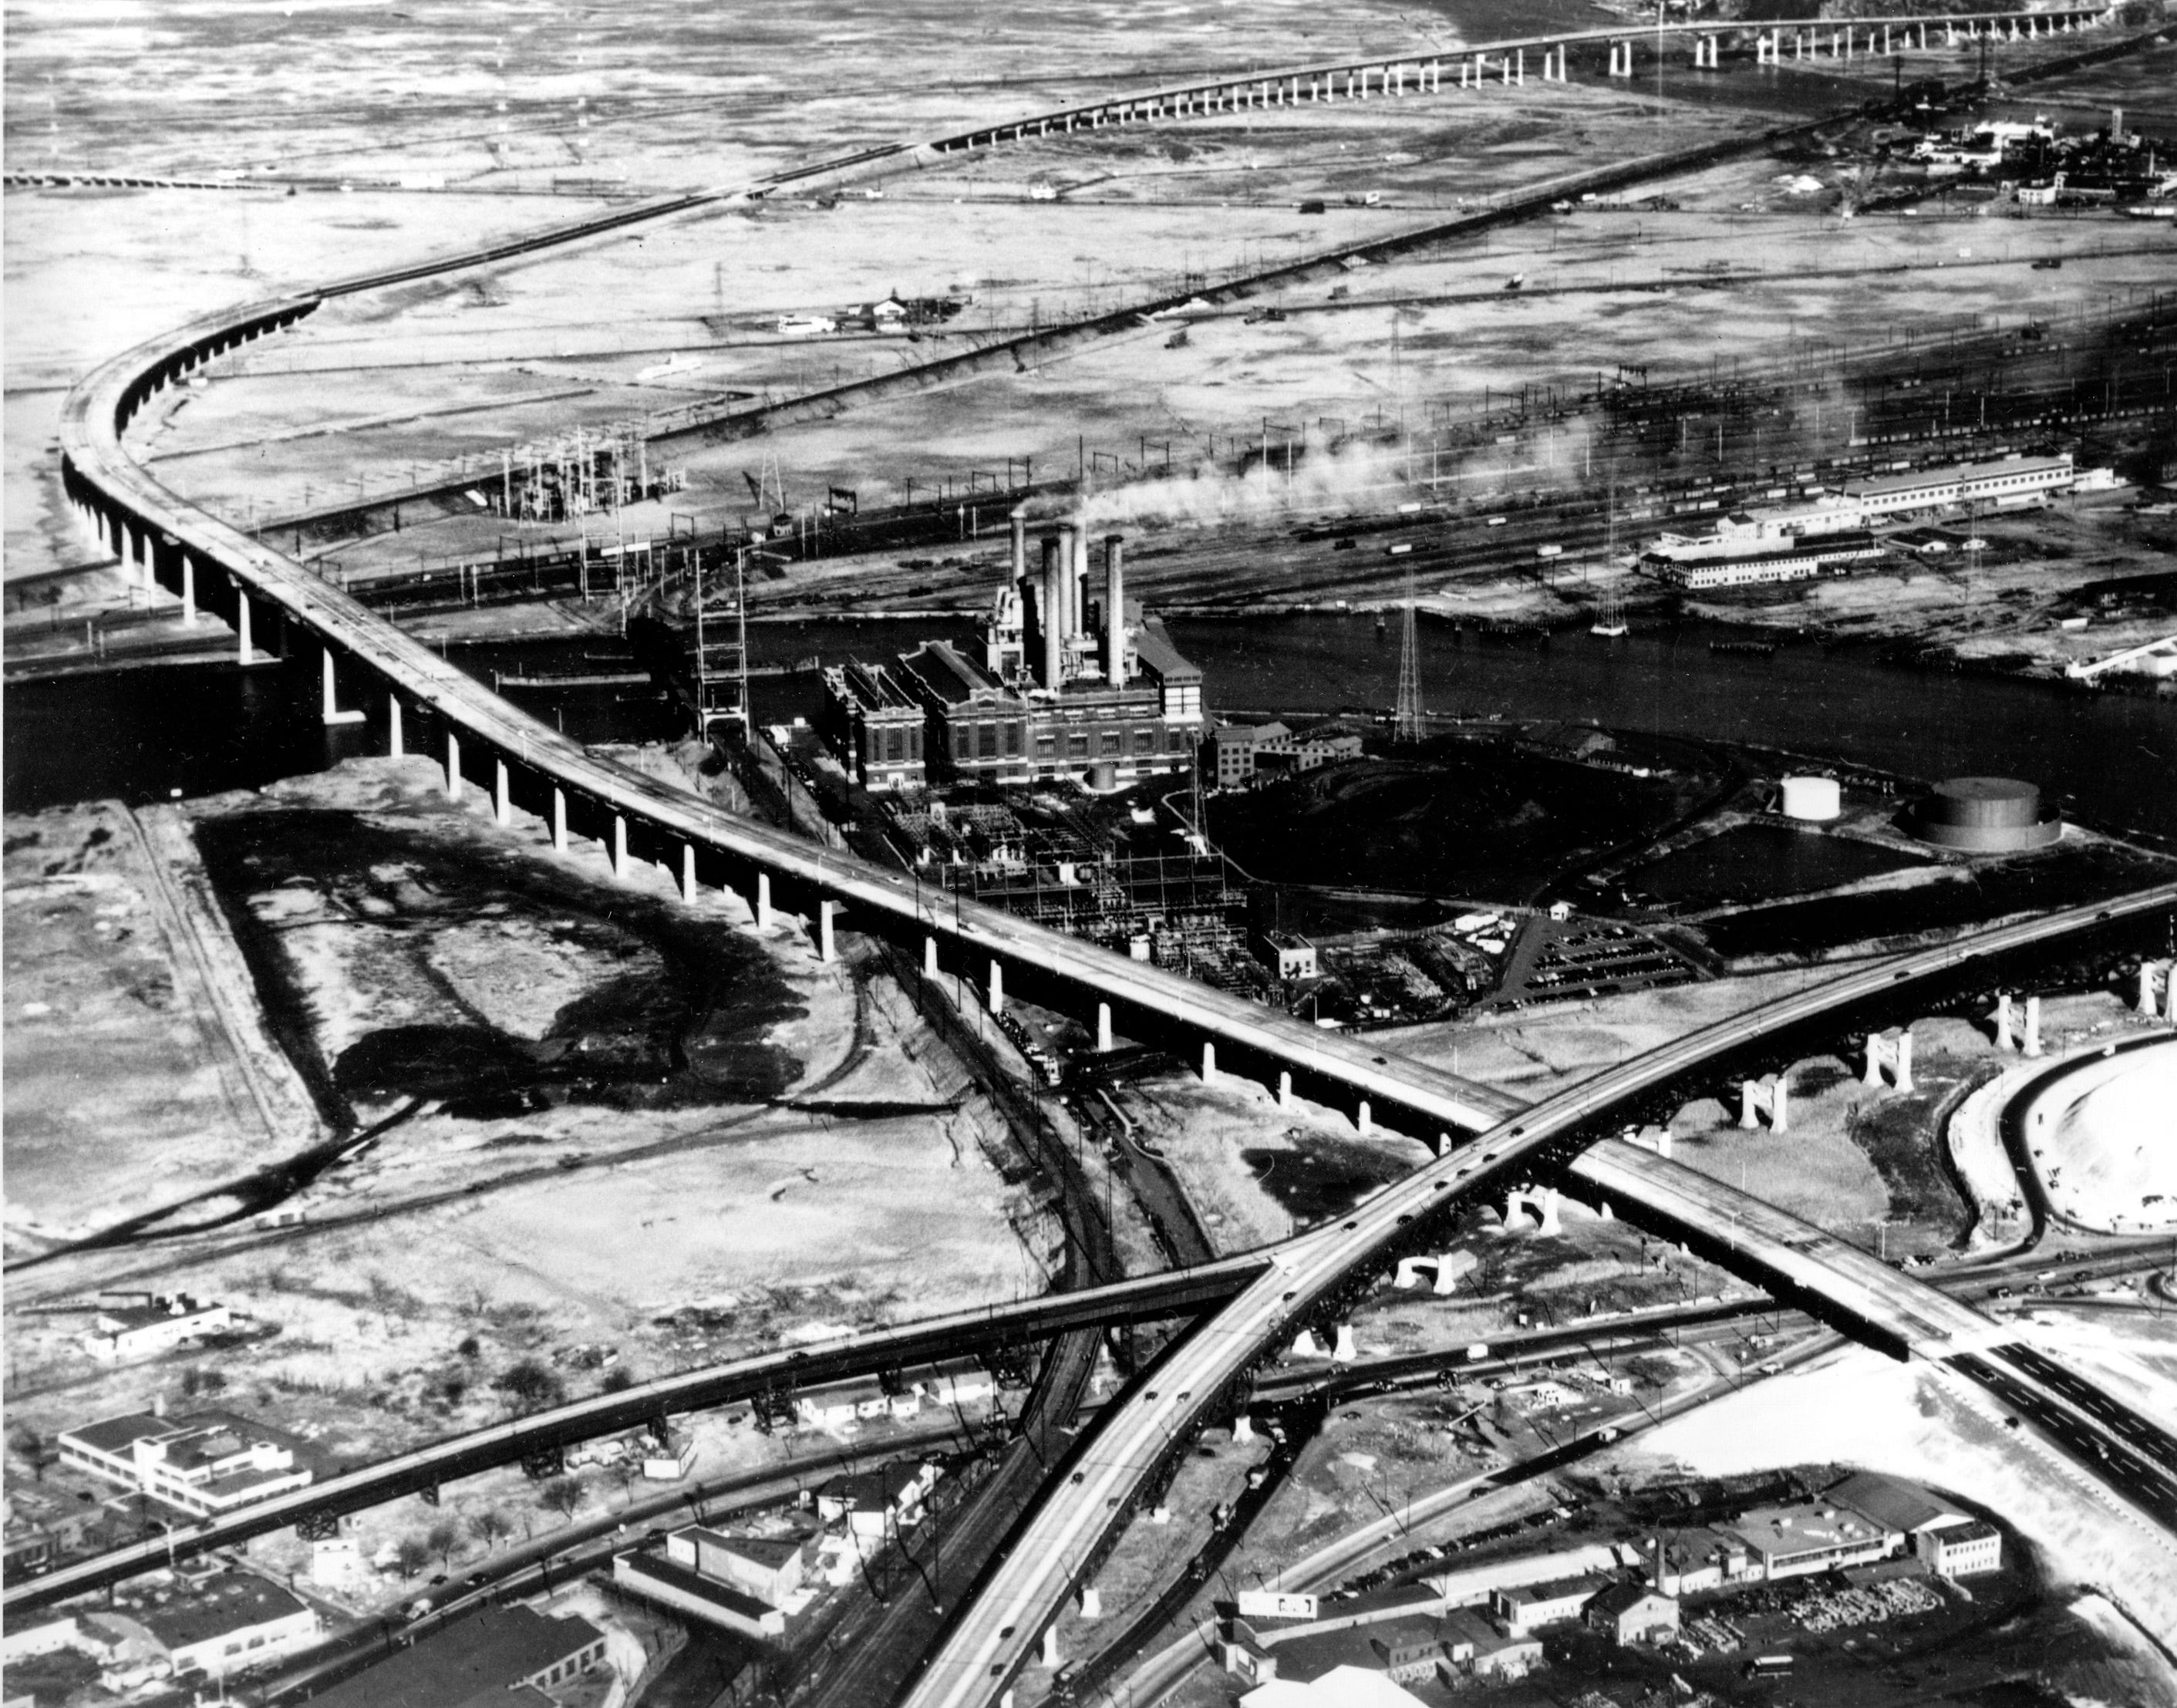 The New Jersey Turnpike crosses the Passaic River and underpasses the Pulaski Skyway in Newark, N.J., as seen in this 1952 aerial view.